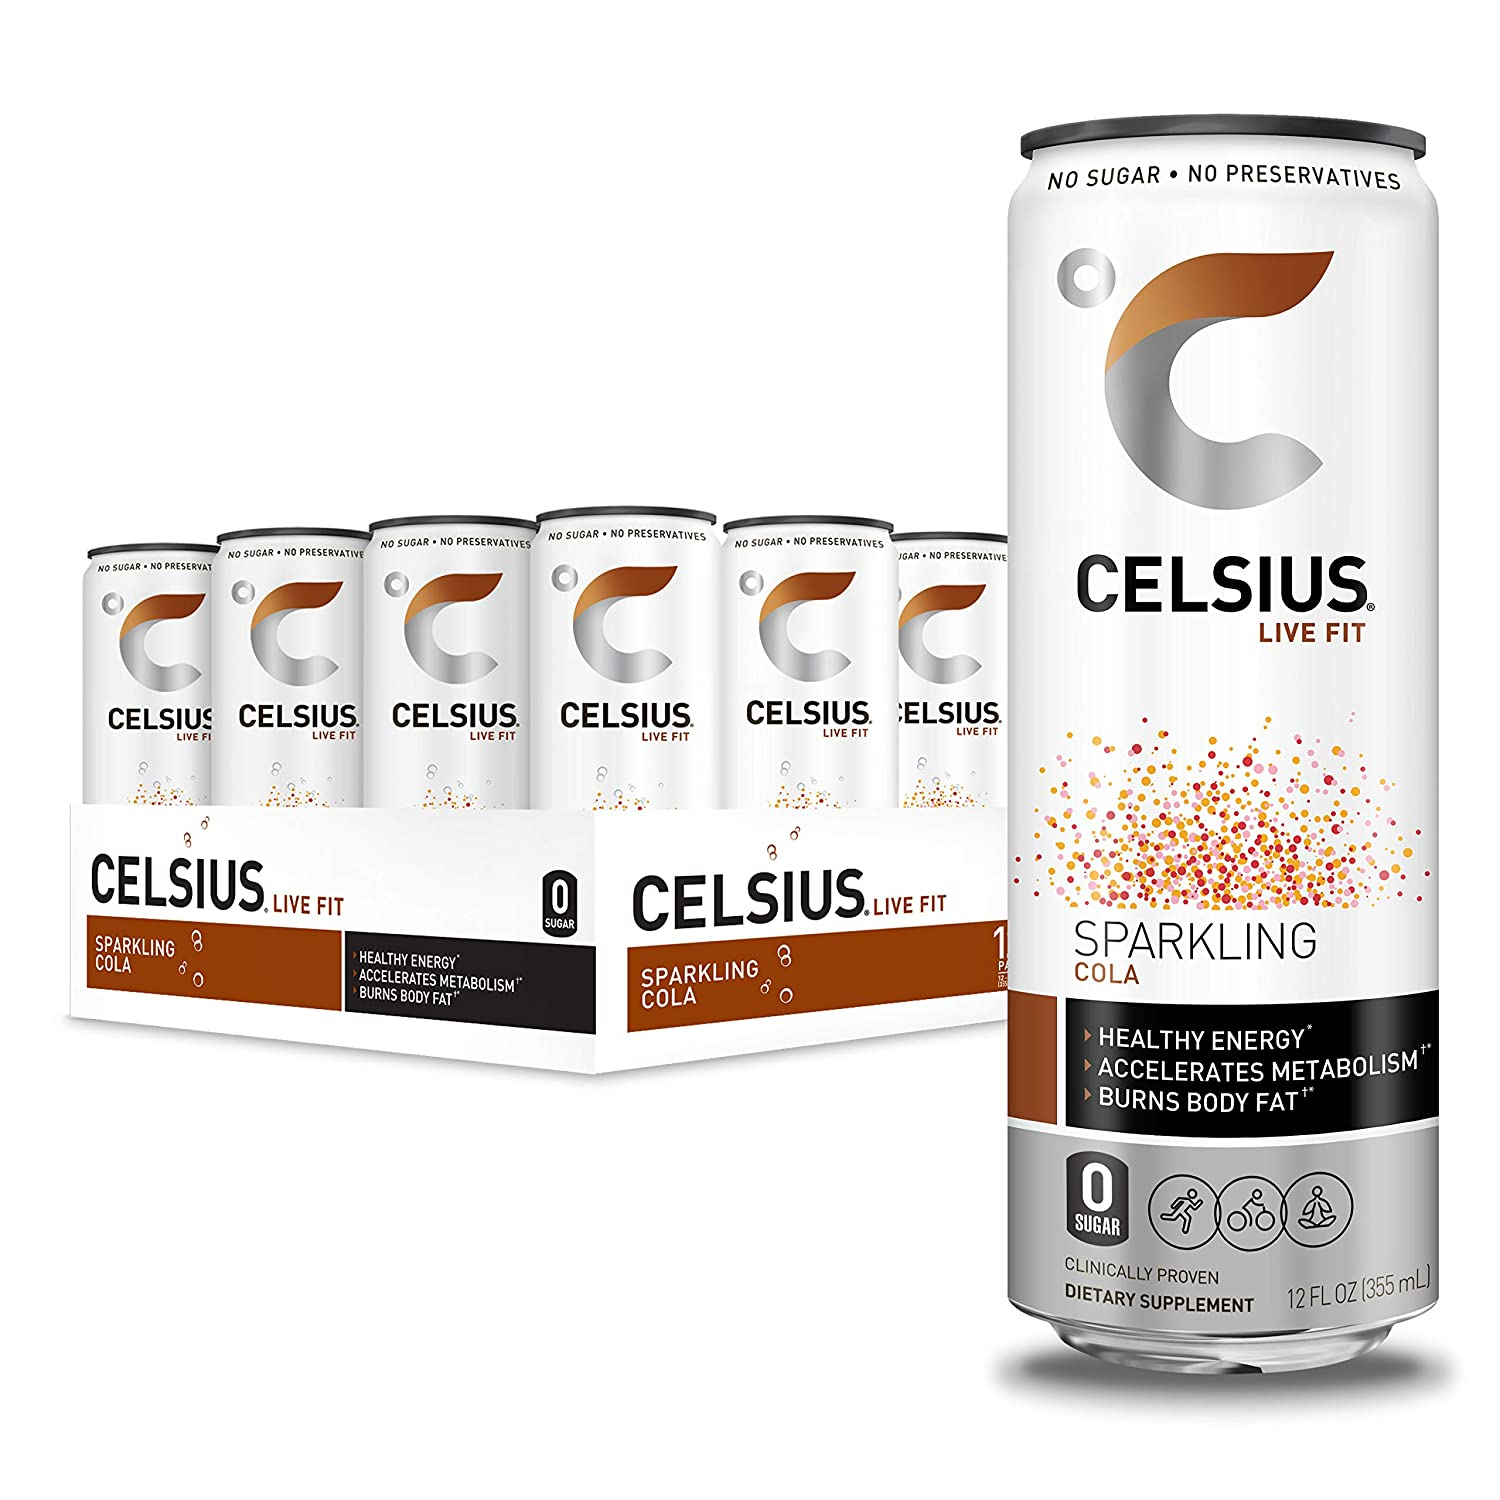 CELSIUS Sparkling Cola Fitness Drink, Zero Sugar, 12oz. Slim Can (Pack of 12)